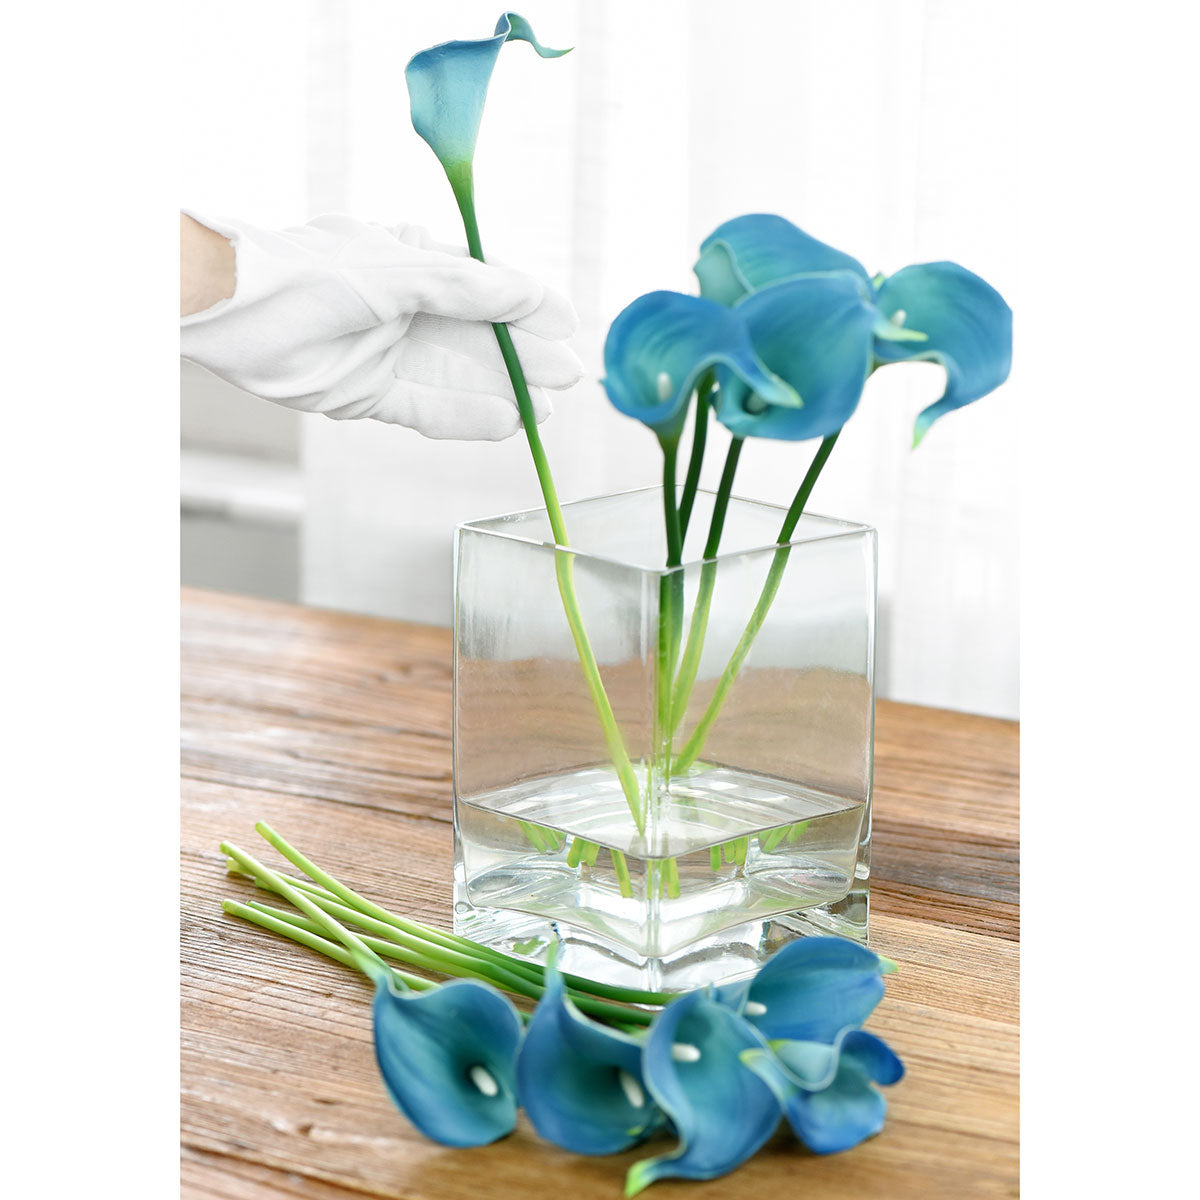 Ocean Radiance Real Touch Calla Lilies Artificial Flower Bouquet 10 Stems